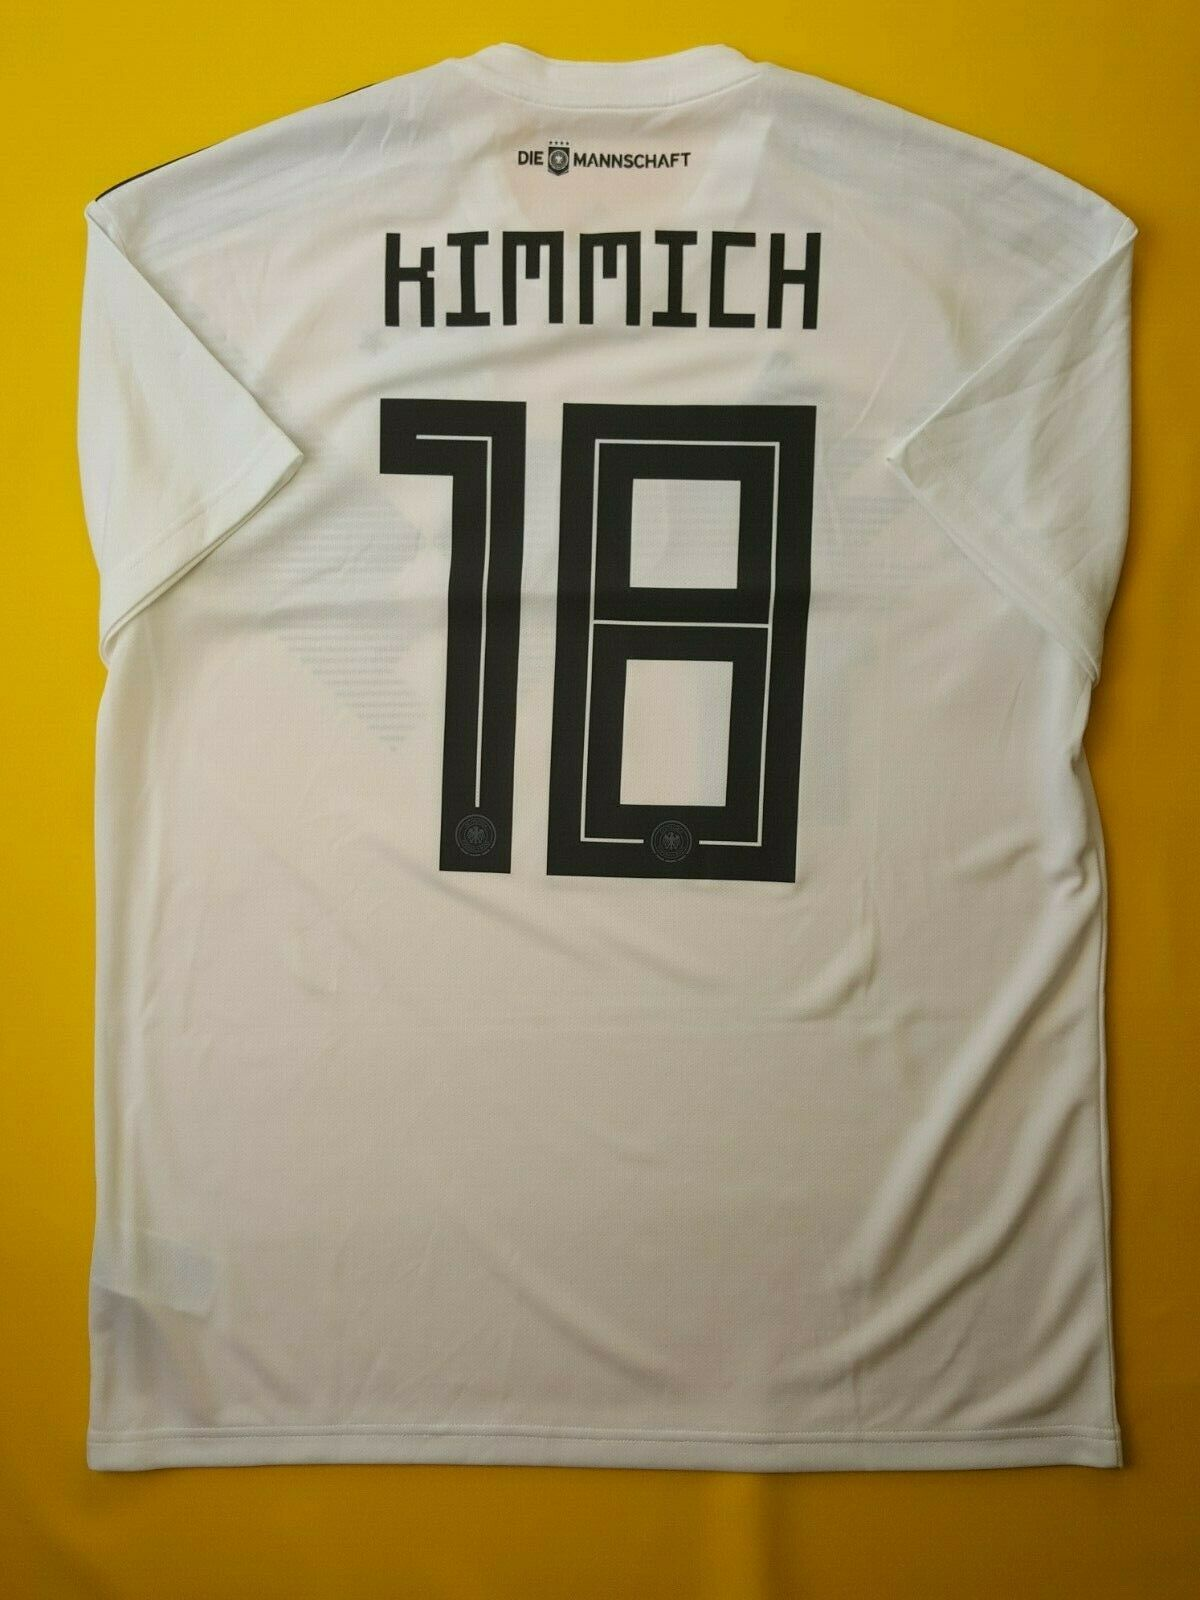 5+ 5 Kimmich Germany soccer jersey large 2018 shirt football Adidas ig93